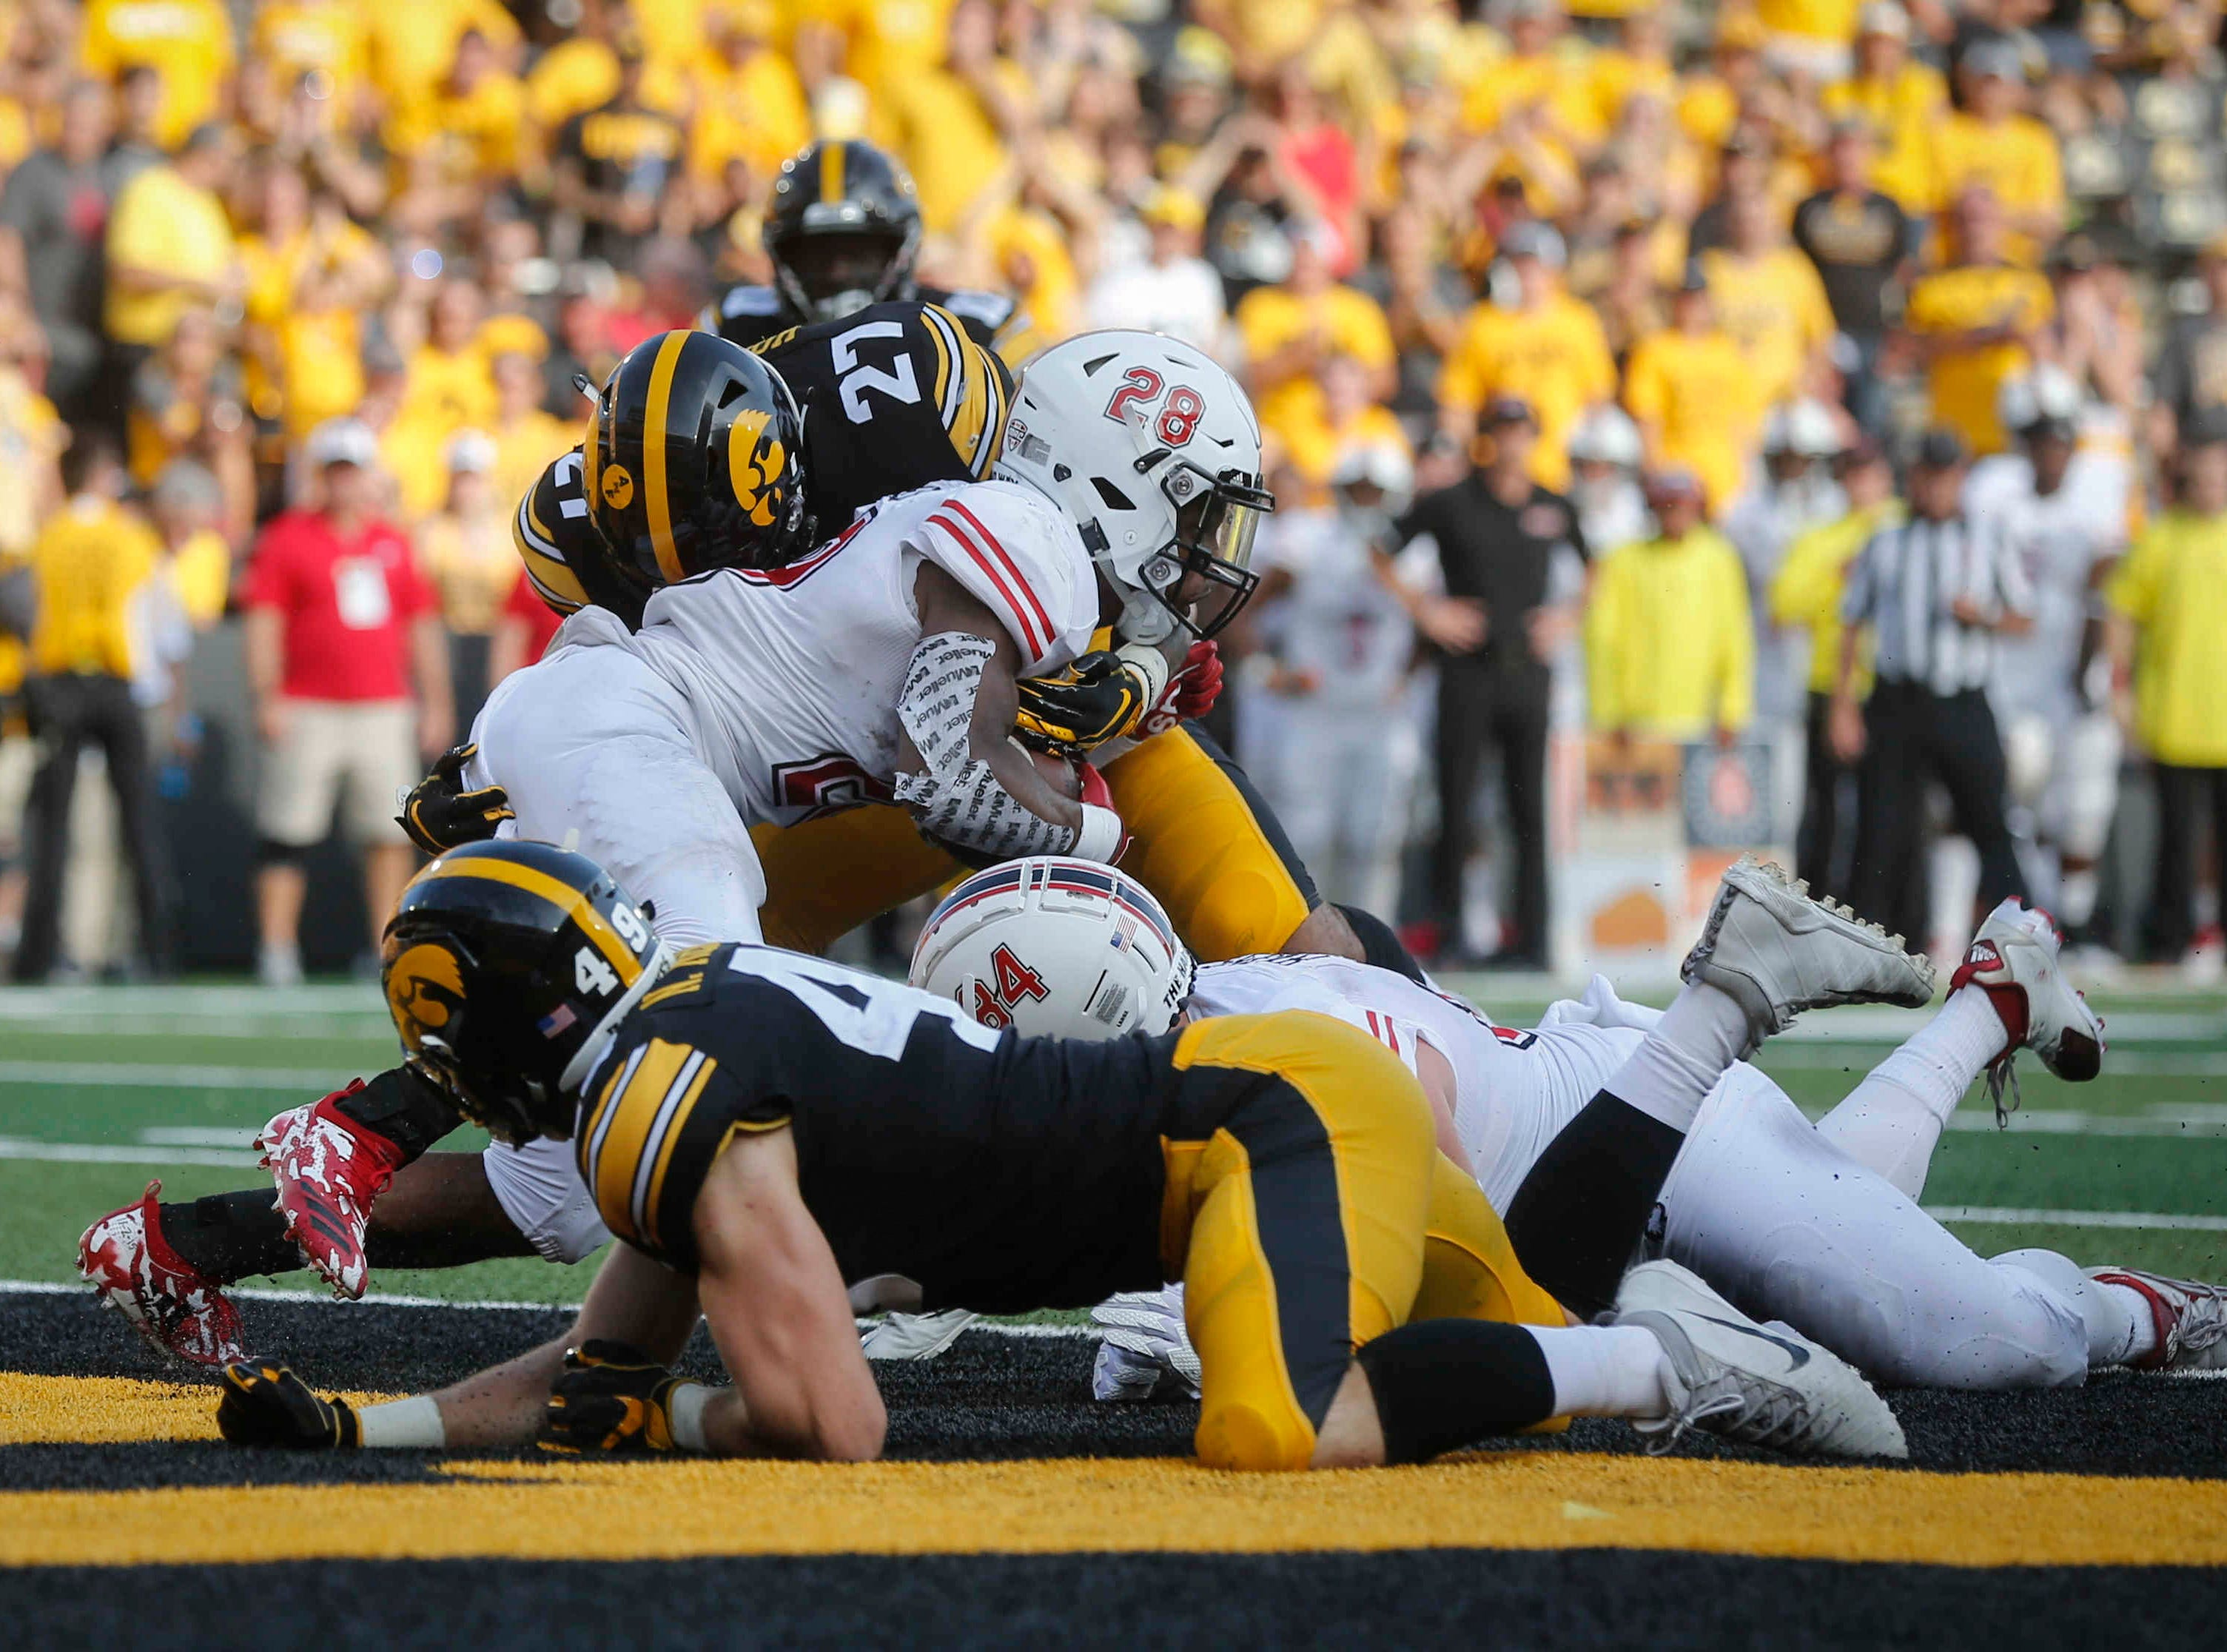 Iowa safety Amani Hooker stops Northern Illinois tailback Jordan Nettles in the end zone for a safety on Saturday, Sept. 1, 2018, at Kinnick Stadium in Iowa City.